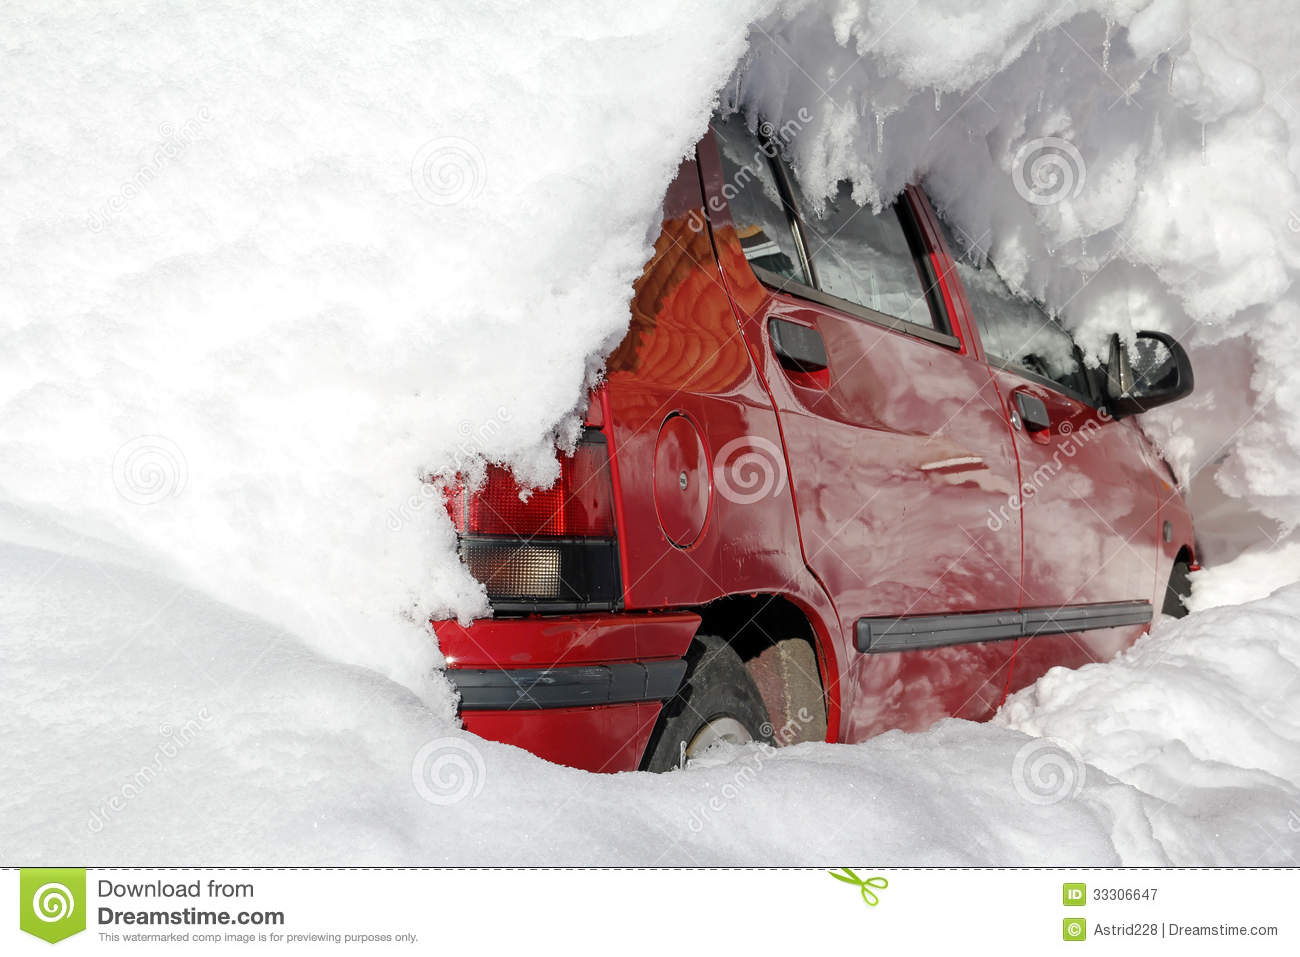 Car In The Winter Royalty Free Stock Photography - Image: 33306647: dreamstime.com/royalty-free-stock-photography-car-winter-absolutely...